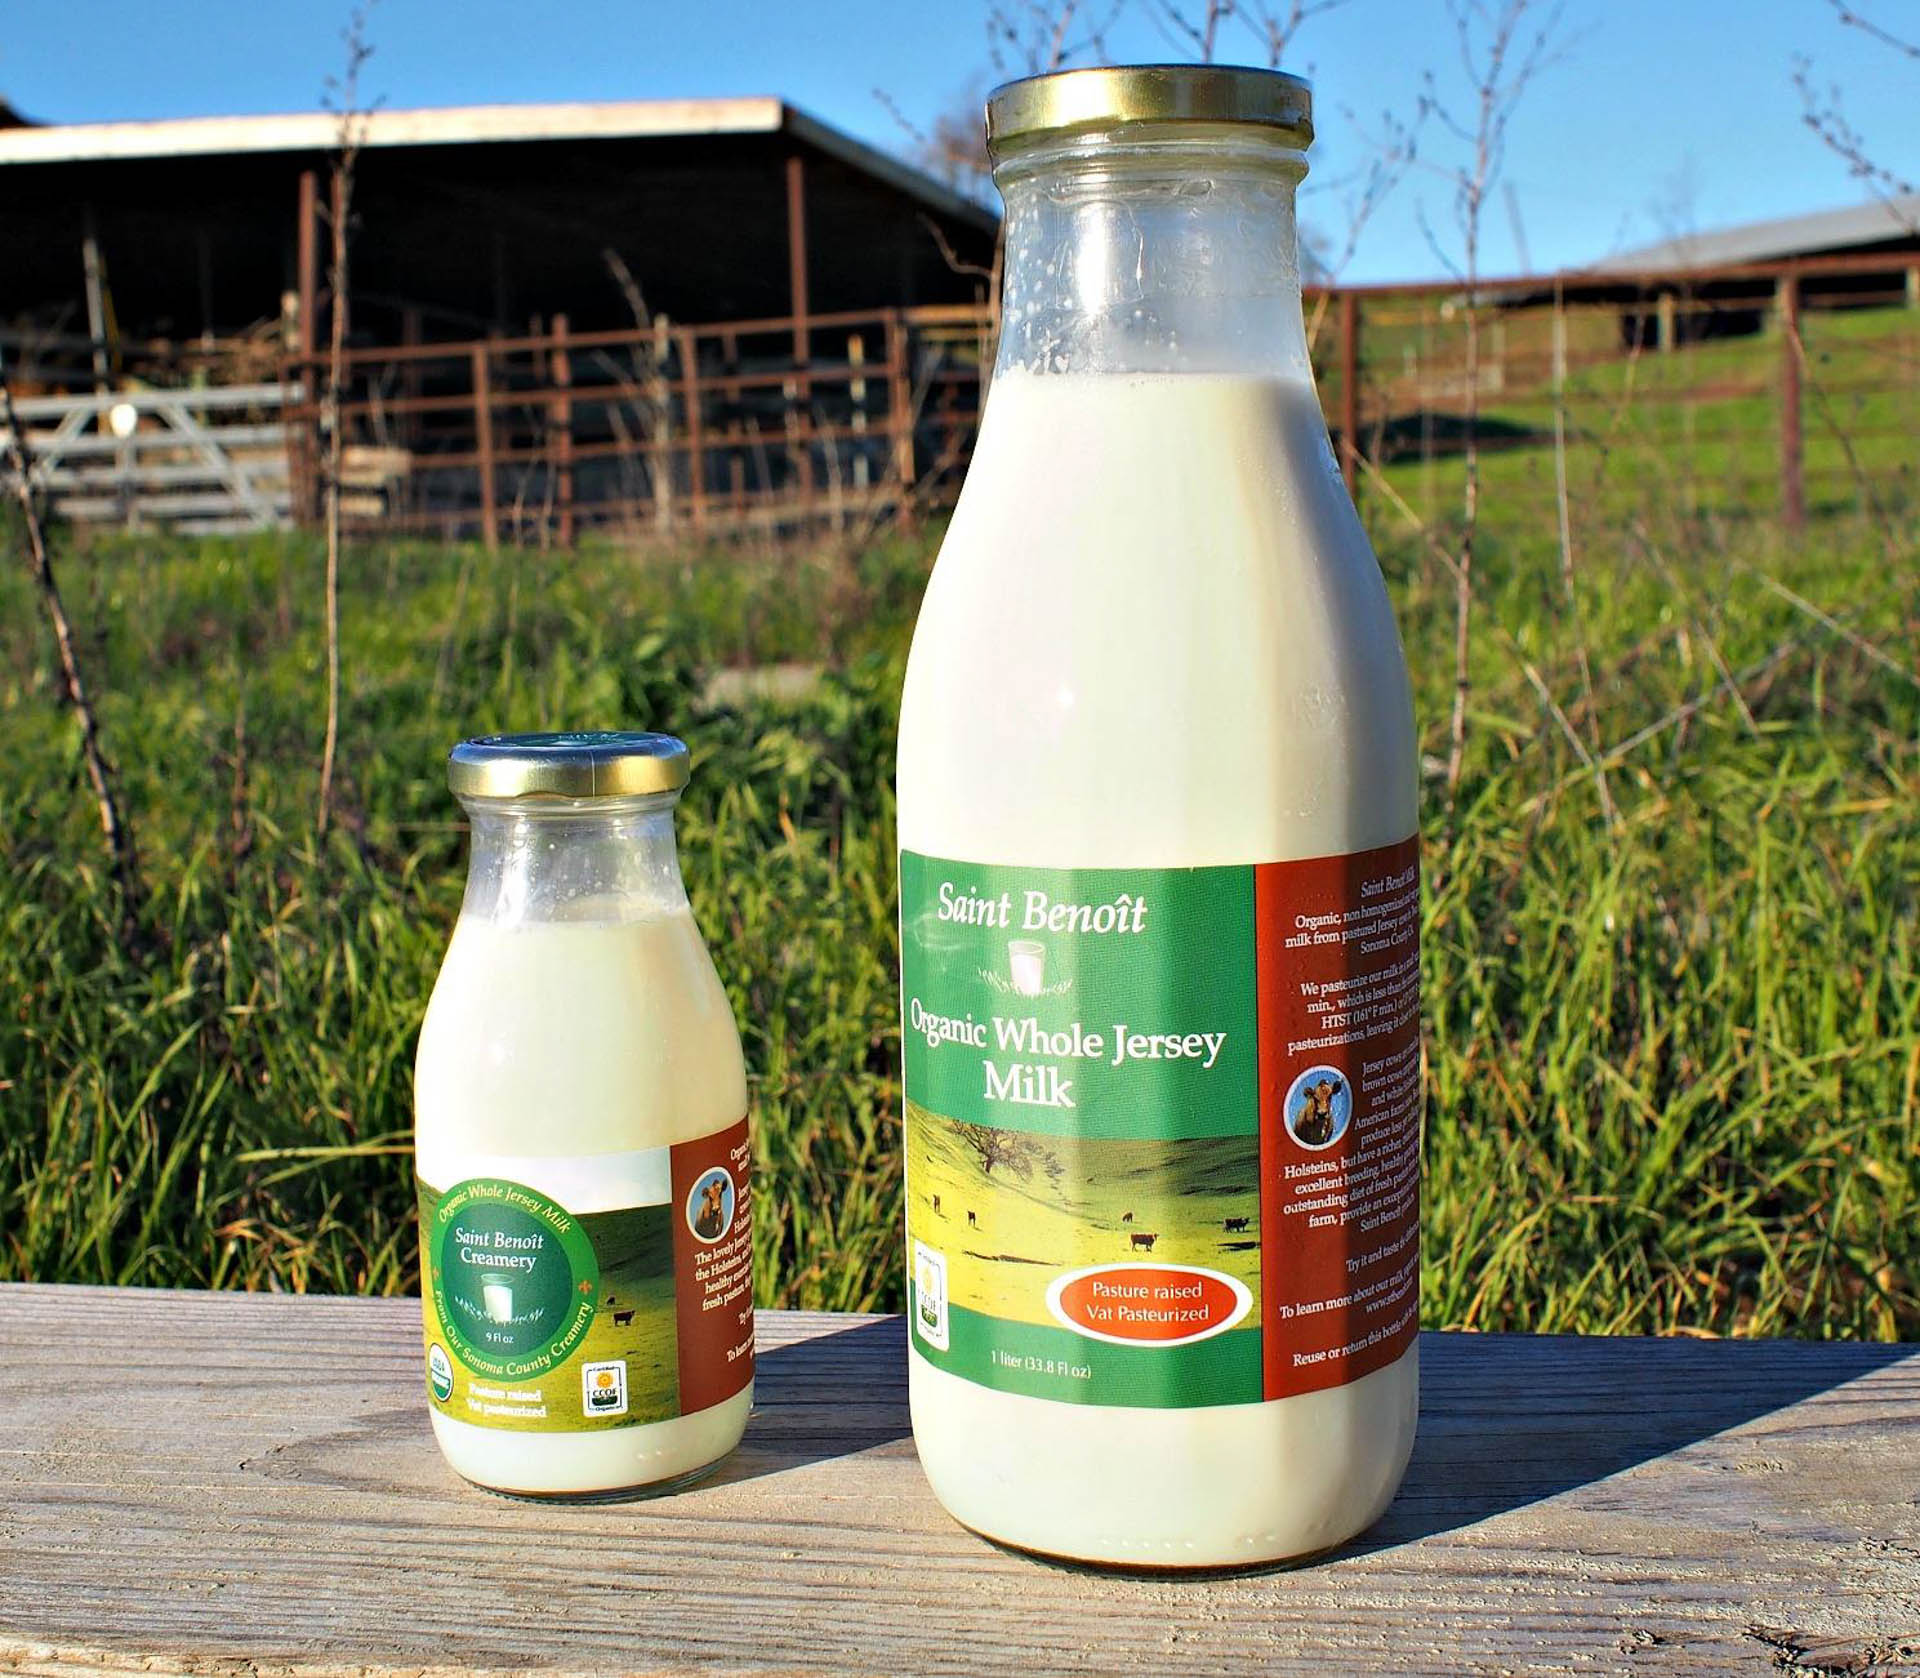 Saint Benoit's milk is sold in glass jars.